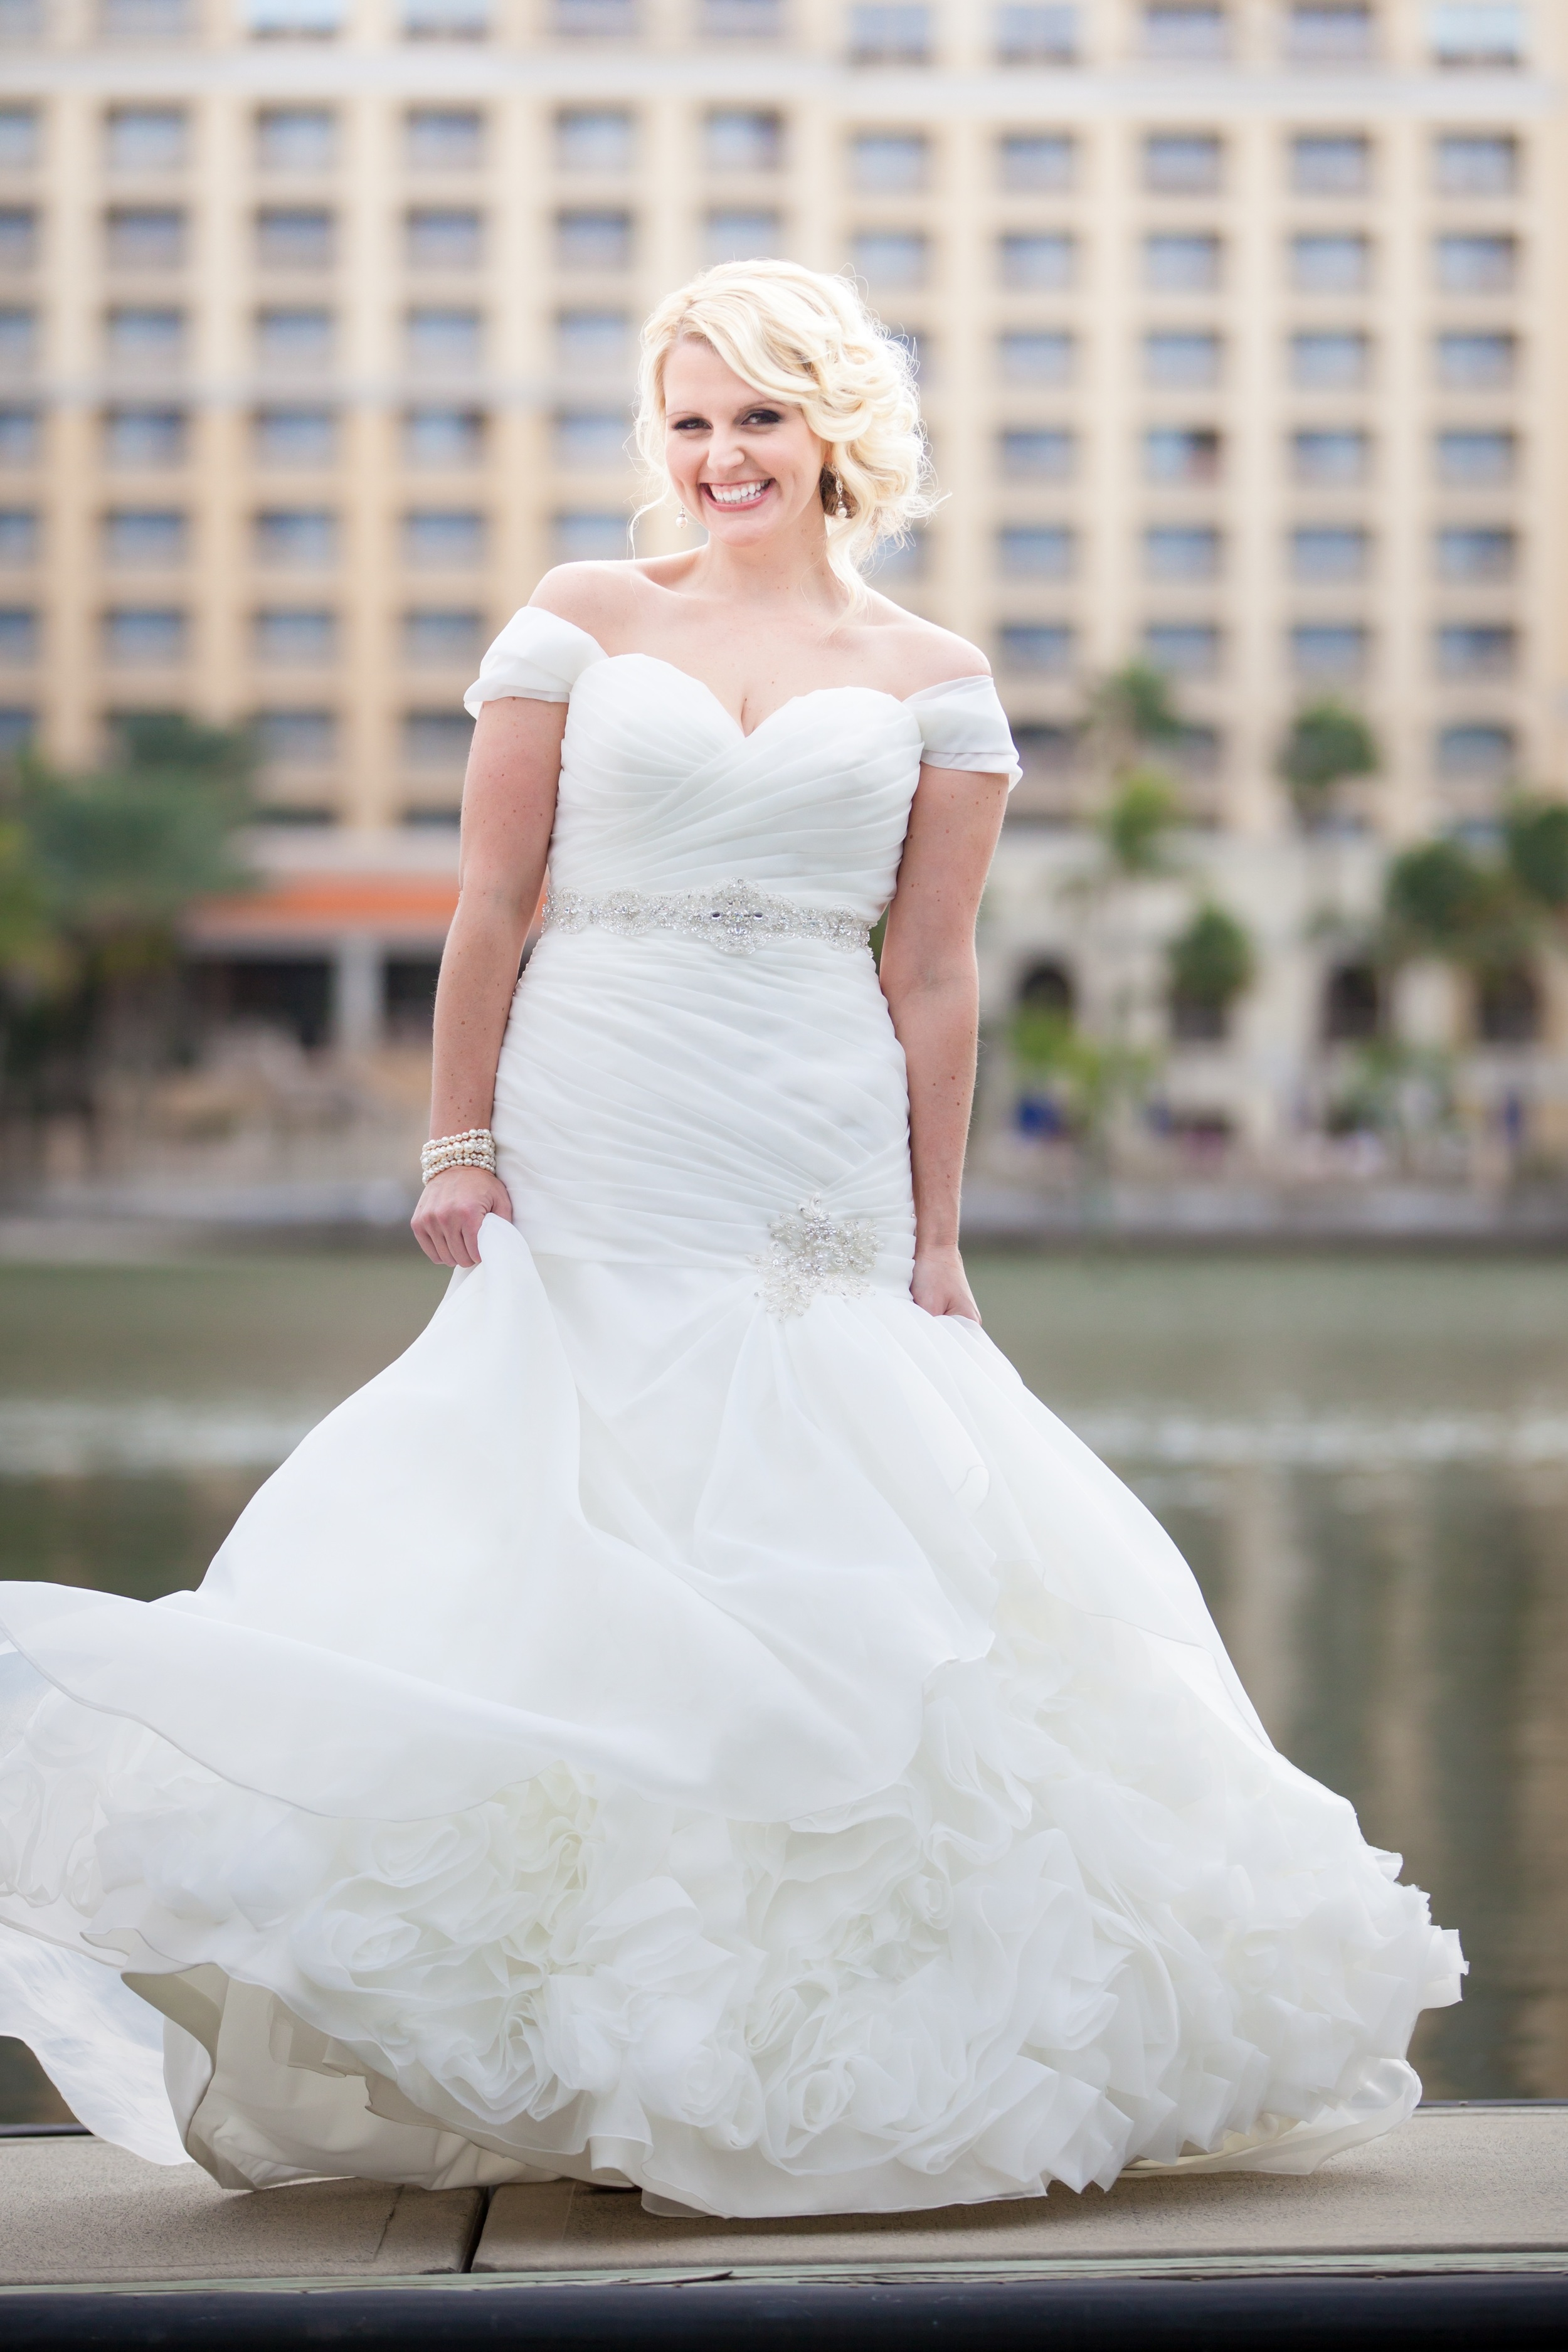 The bride wore a stunning fit and flare organza gown with sheer cap sleeves